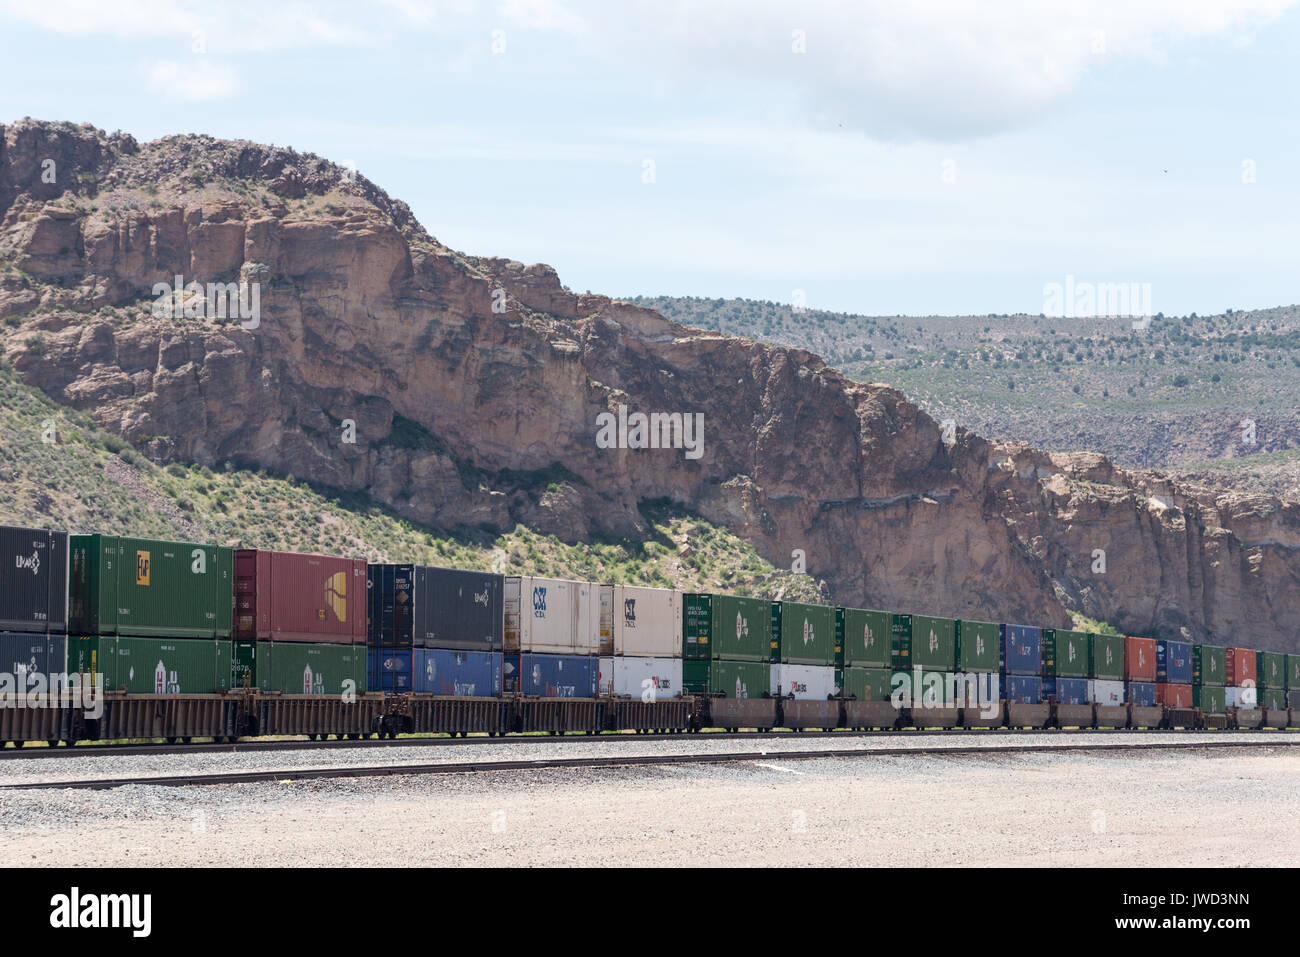 Double stacked intermodal containers on a freight train in Caliente, NV. - Stock Image